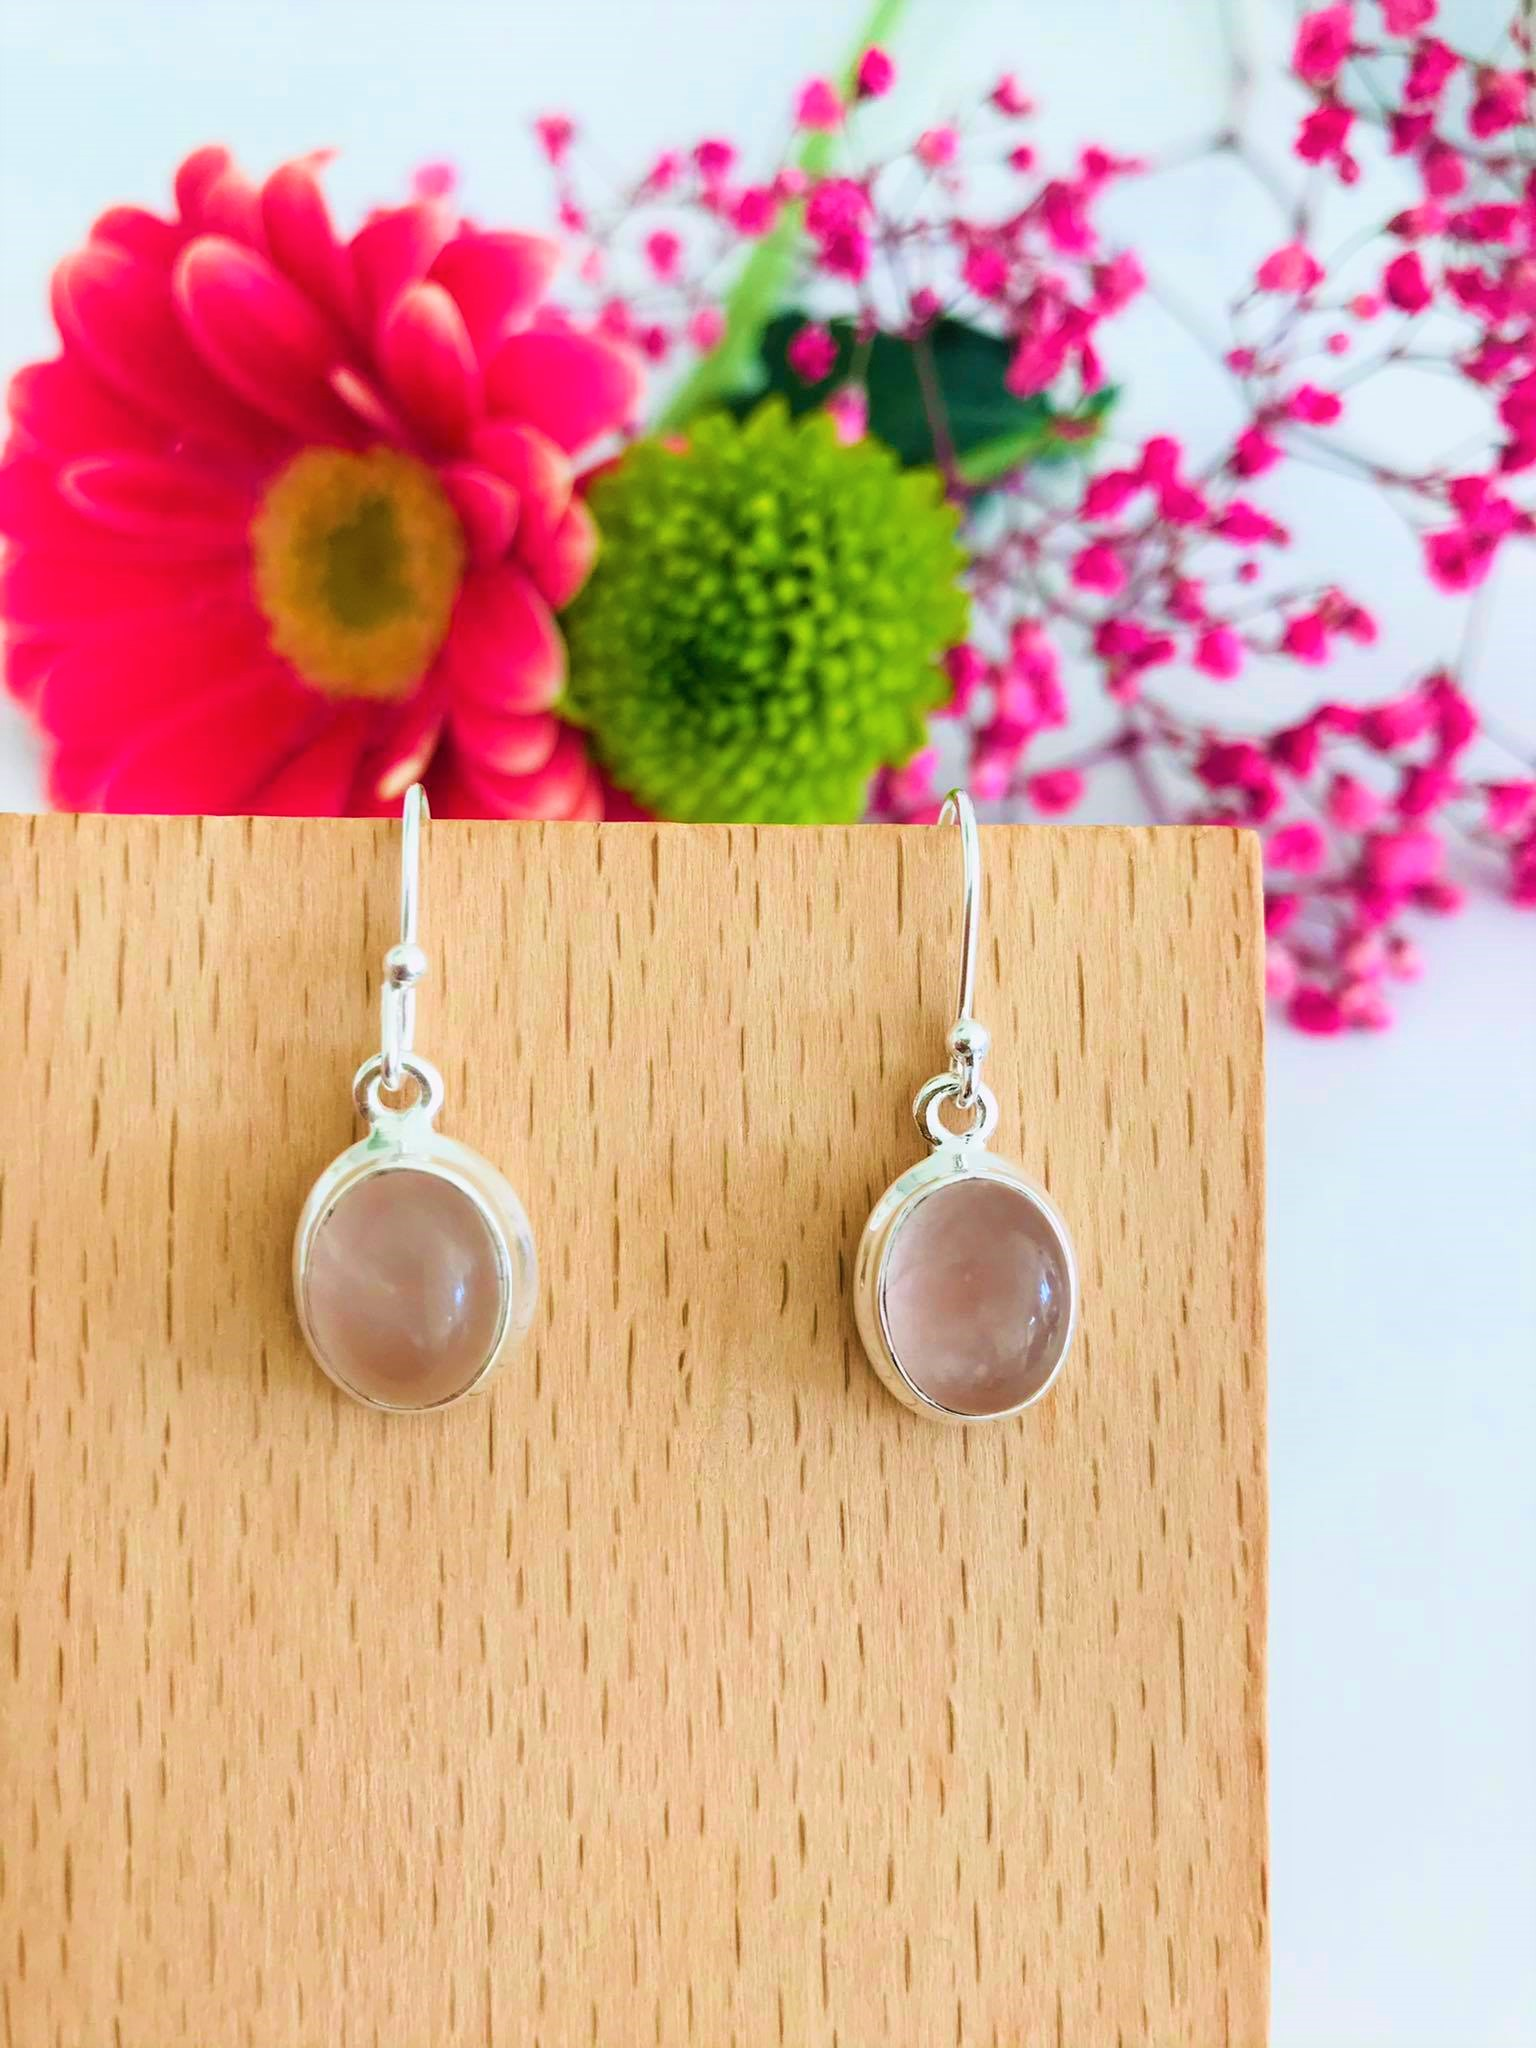 Beautiful High Polished Oval Natural Rose Quartz Sterling Silver Earrings Image